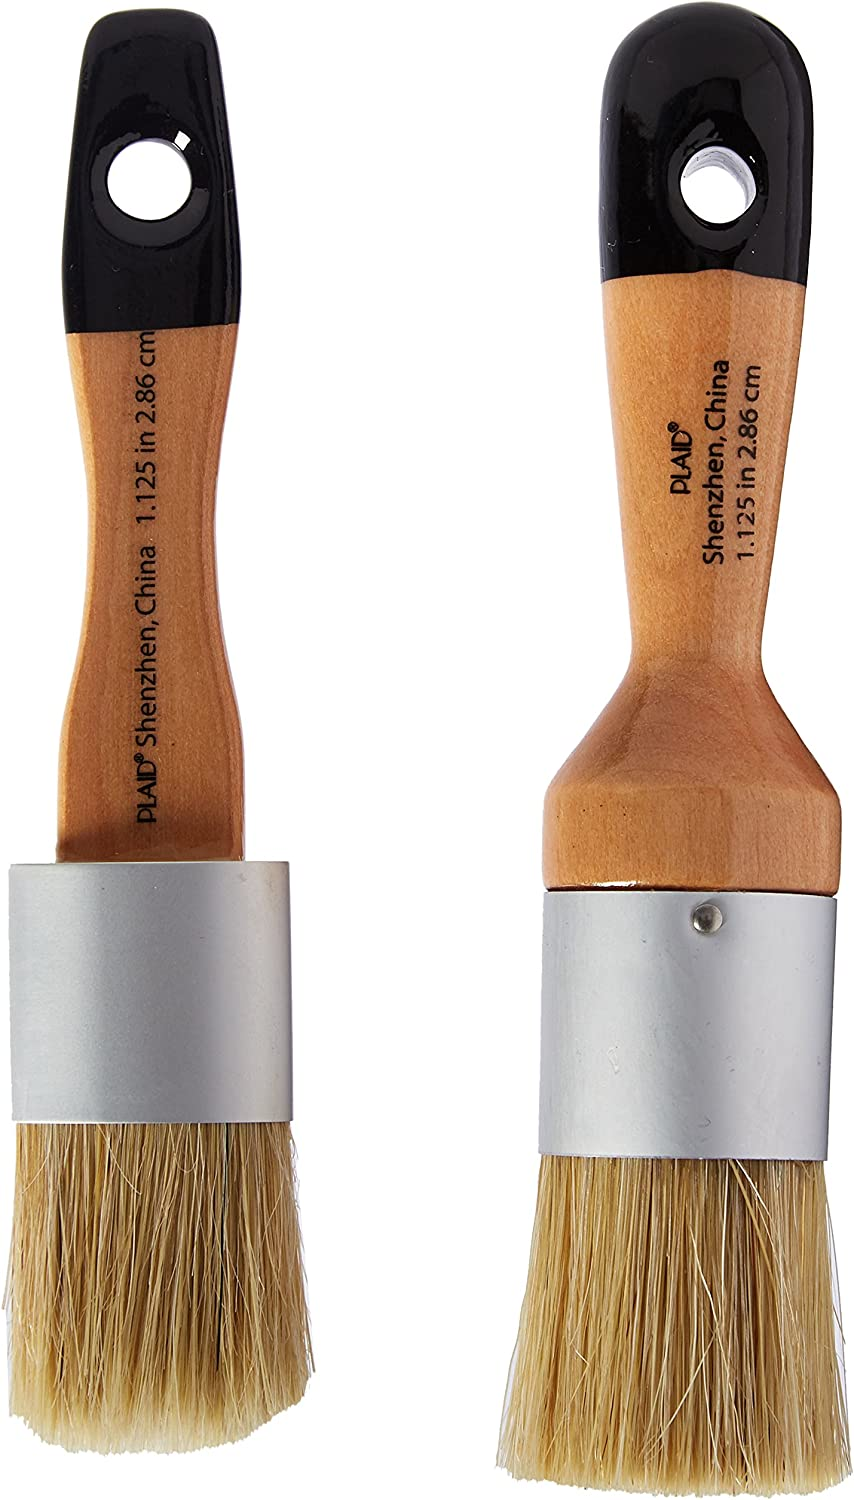 FolkArt Home Decor depot Chalk Brushes and Wax Ranking TOP15